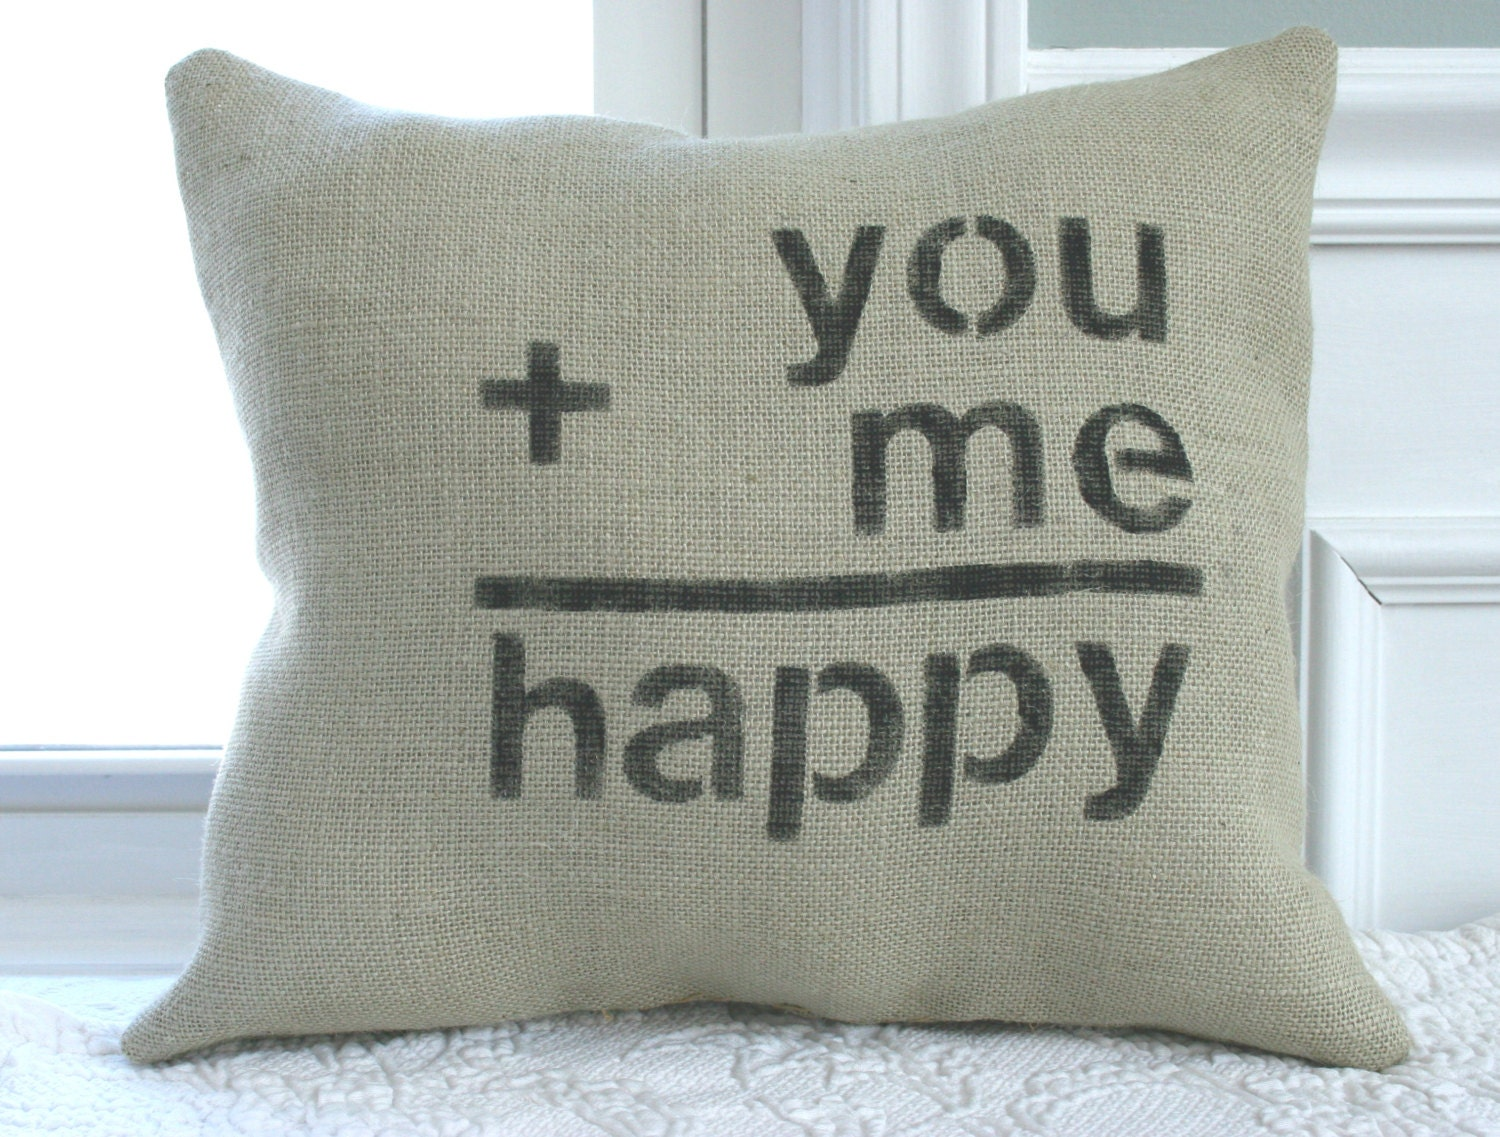 Burlap Throw Pillows Etsy : Burlap Happy Love Pillow by CariJoyDesigns on Etsy